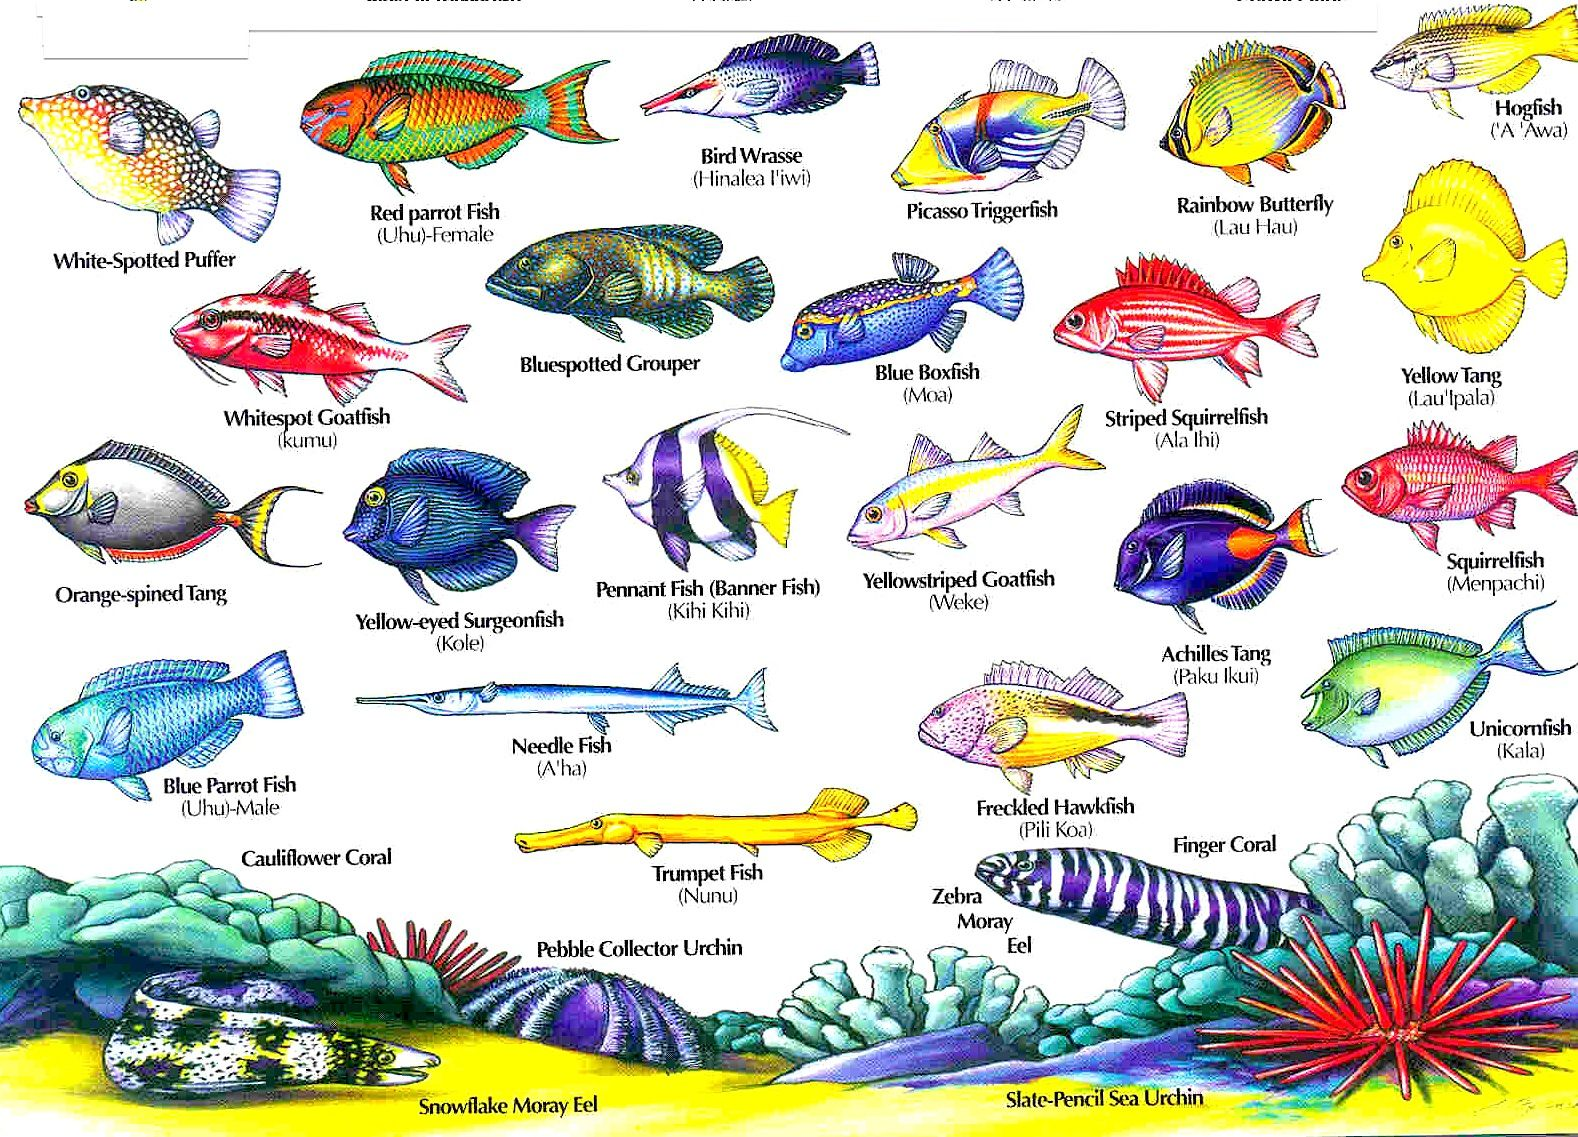 Freshwater fish of hawaii - Hawaii Reef Fish Guide With Hawaiian Names 2 Aloha Joe Blog